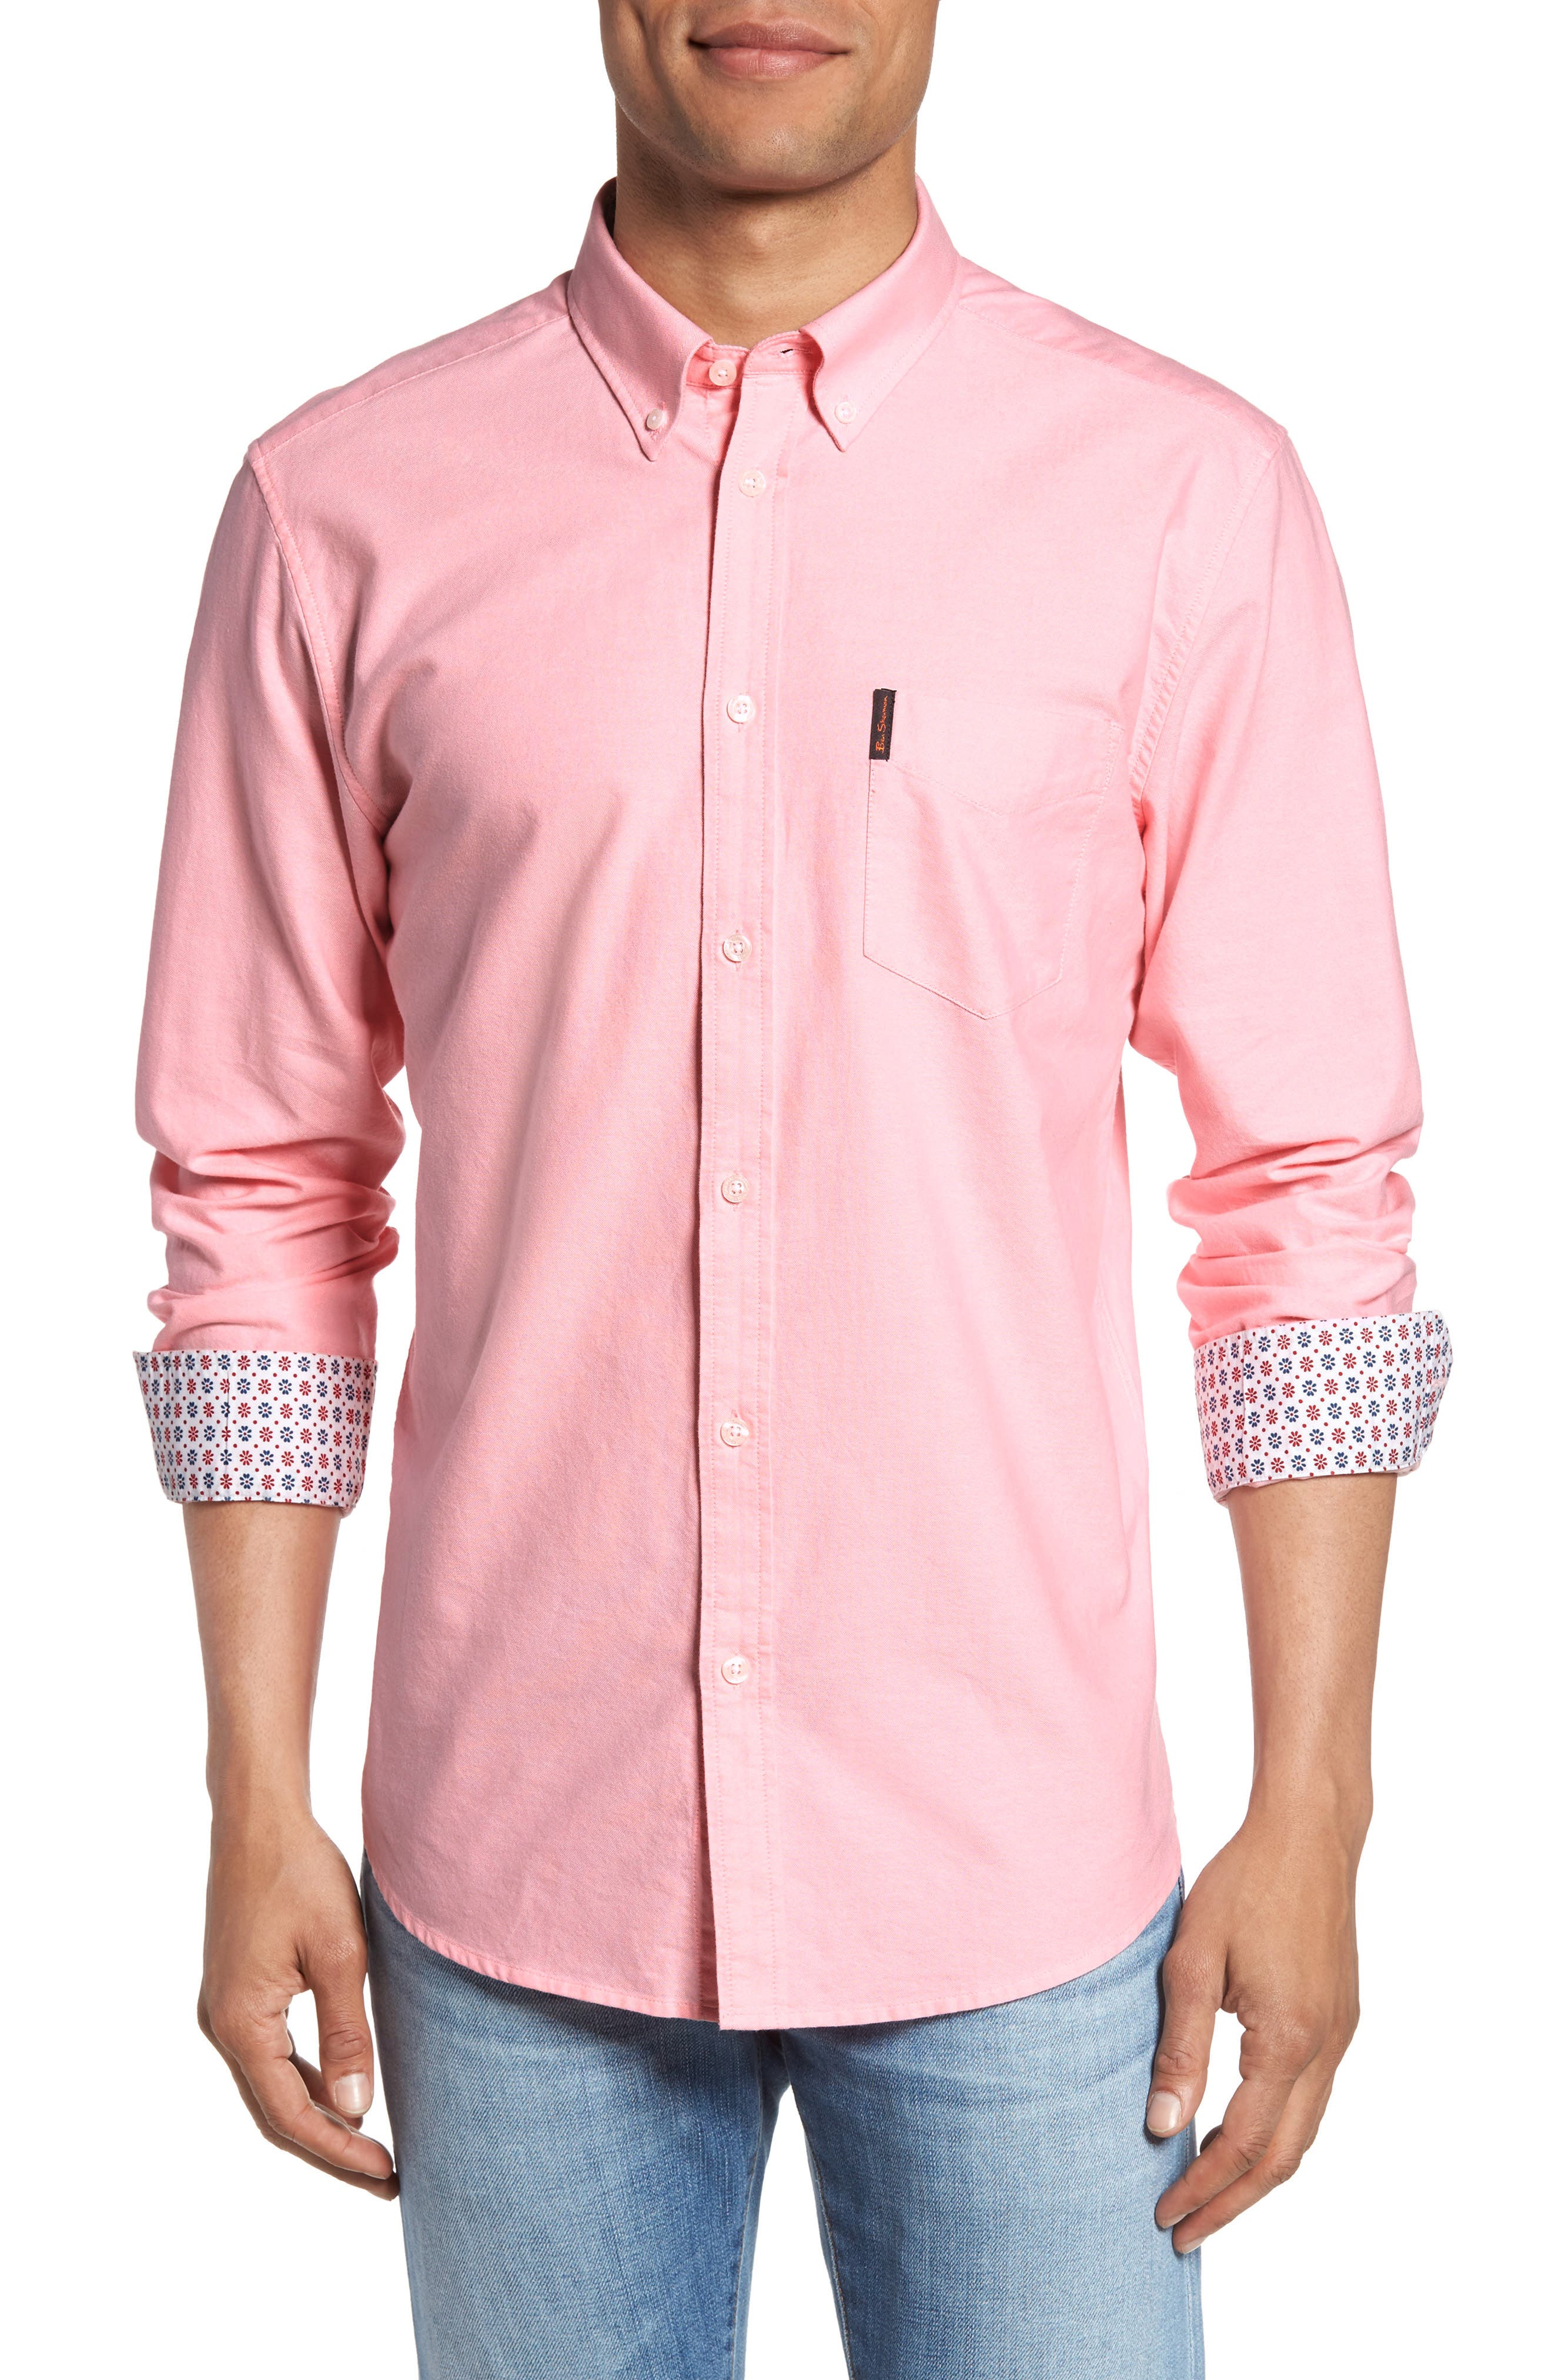 Ben Sherman Contrast Lined Oxford Shirt